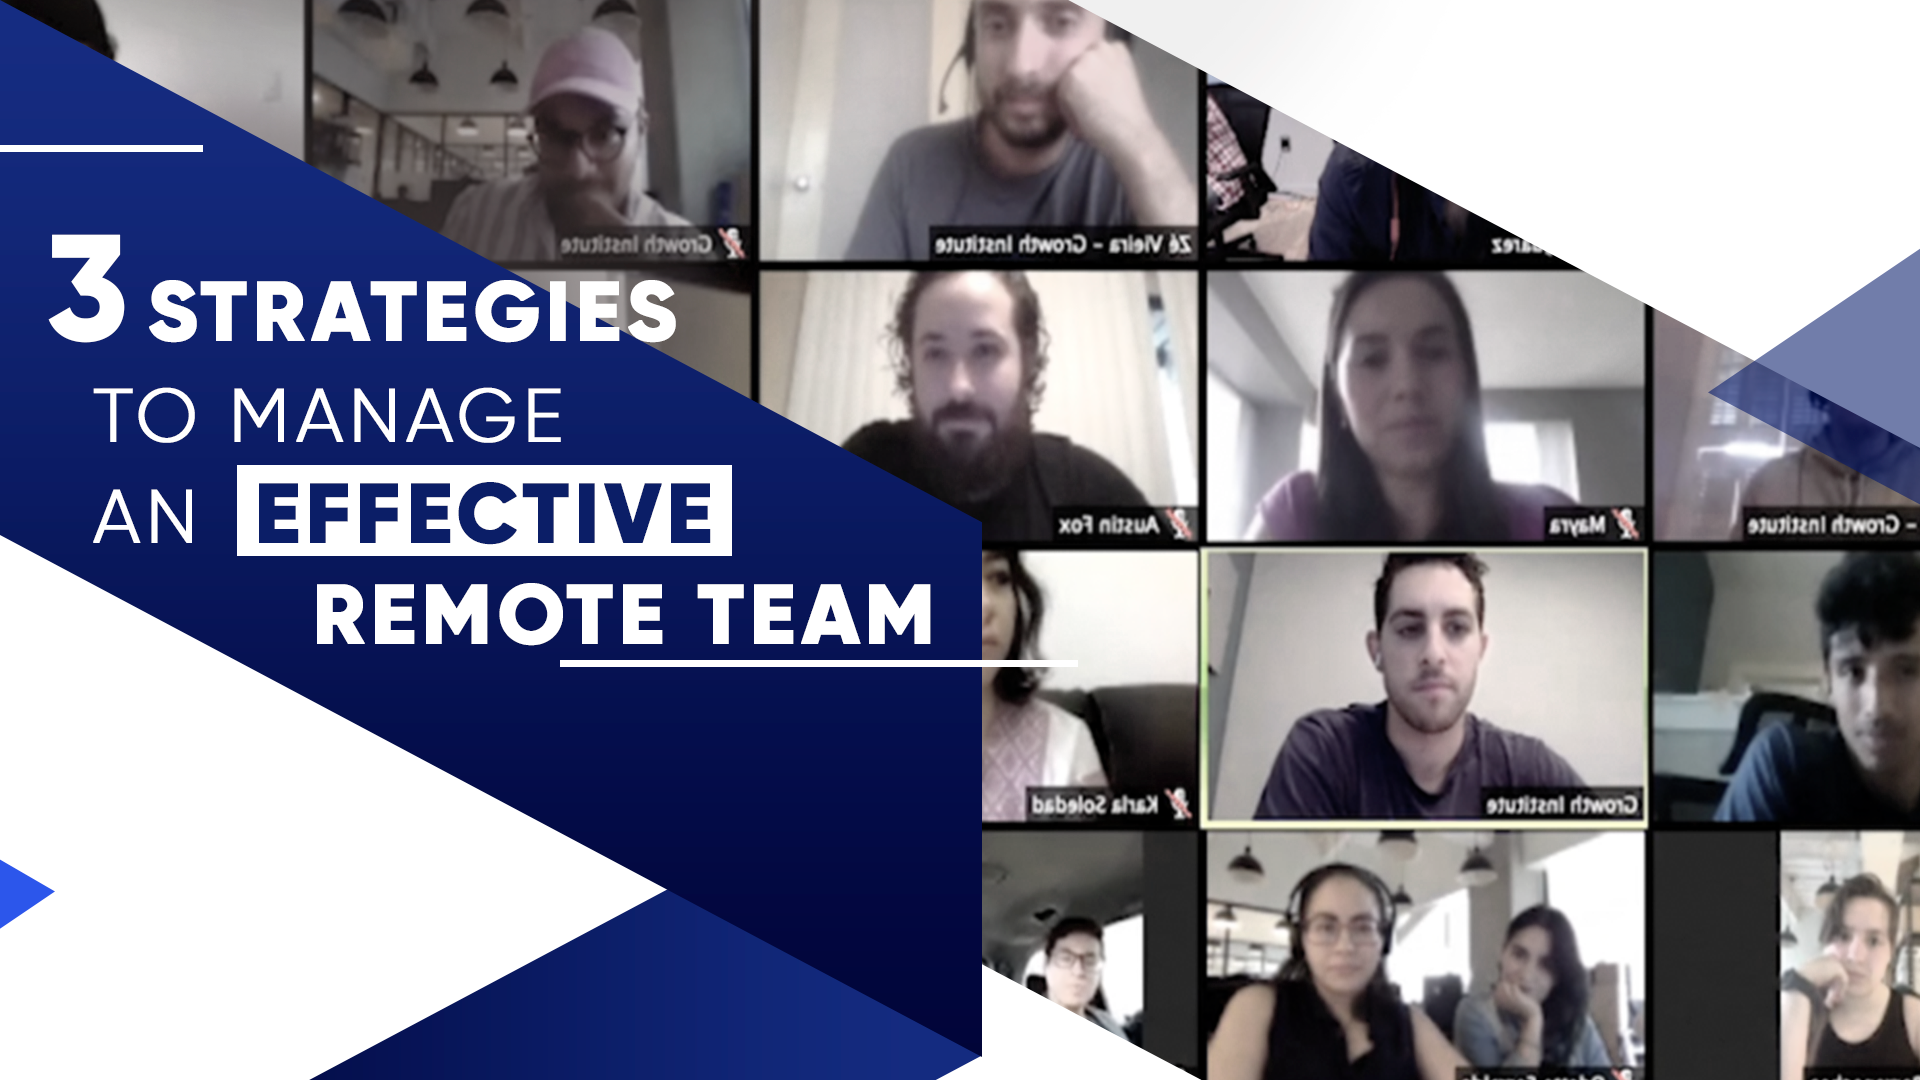 3 Strategies to Manage an Effective Remote Team